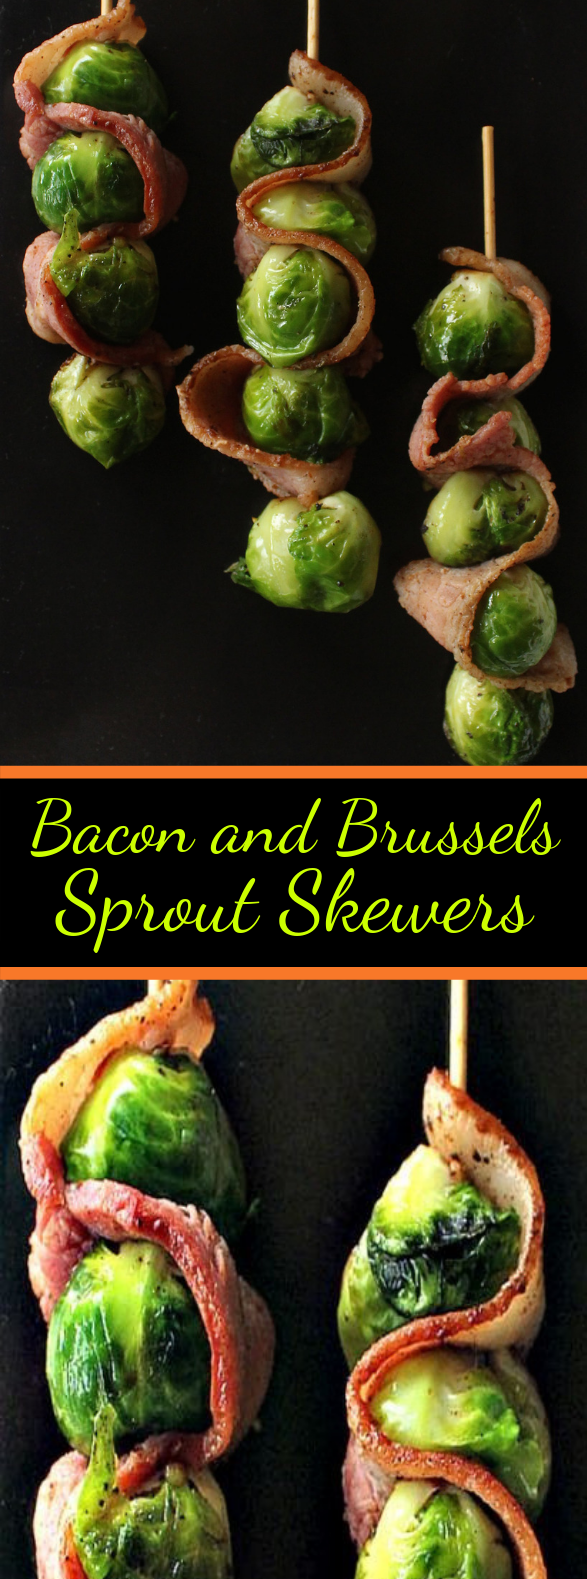 Bacon and Brussels Sprout Skewers #Bacon #Veggies